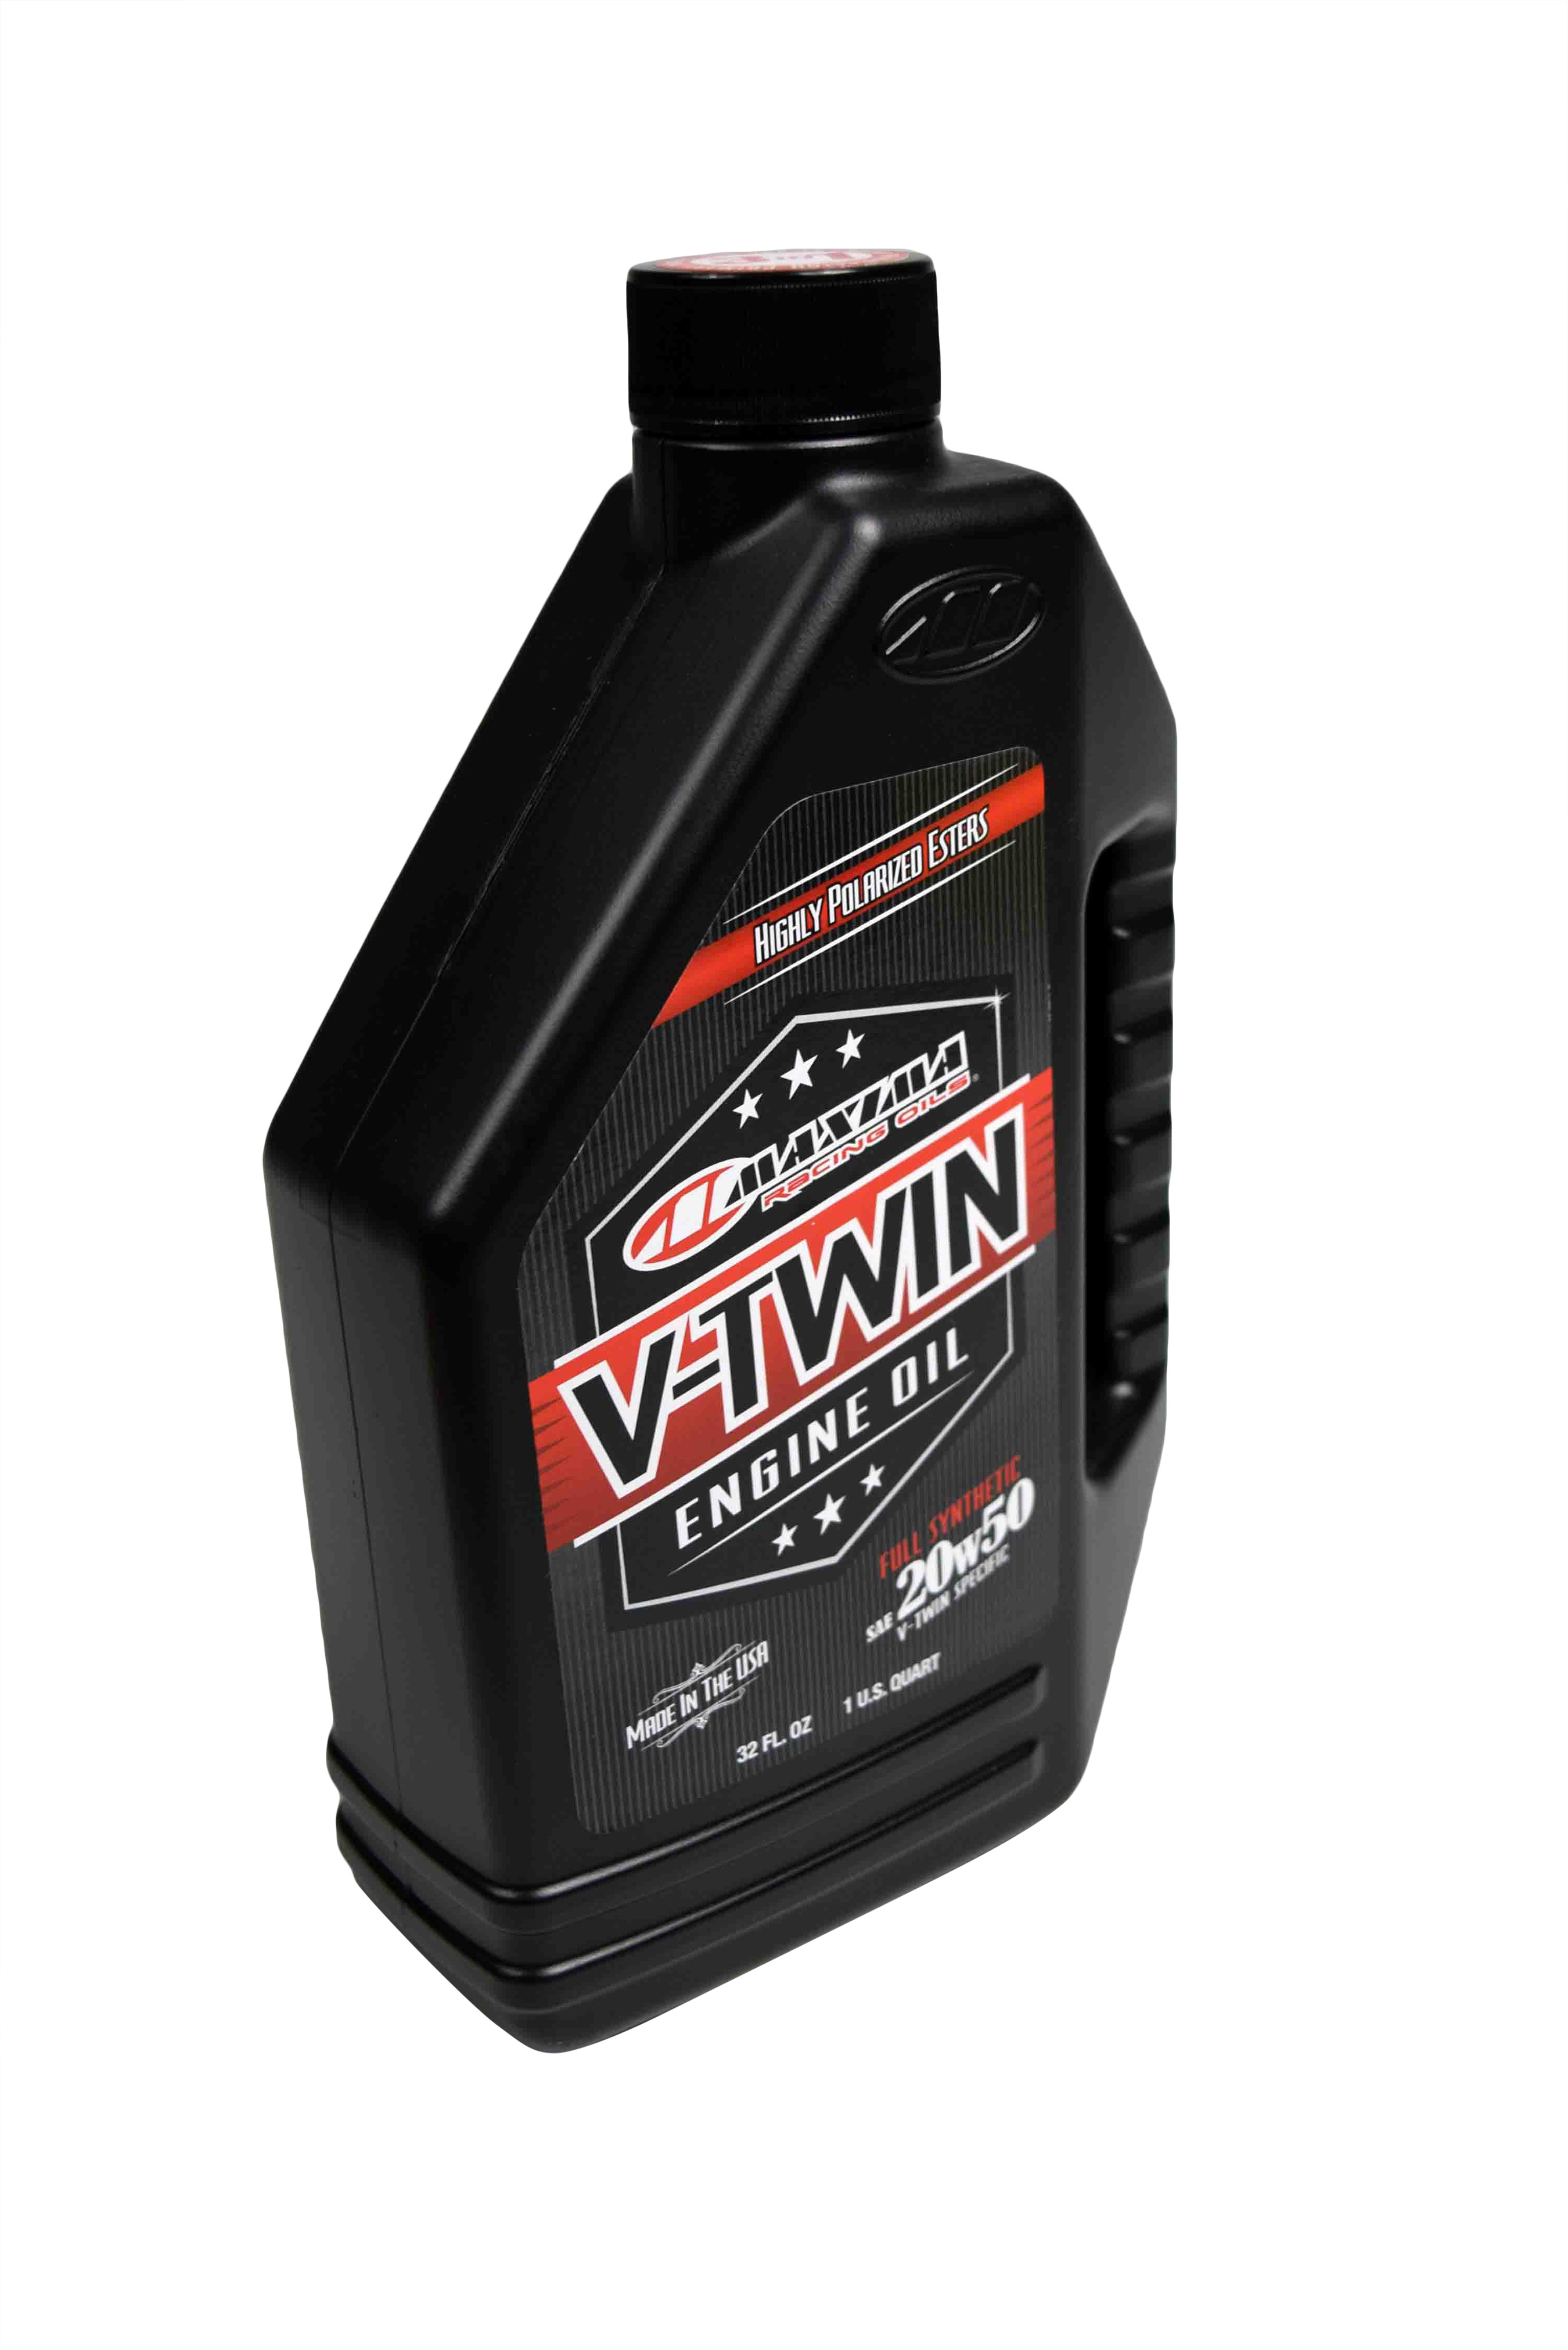 Maxima-Racing-Oils-30-11901-20w50-V-Twin-Full-Synthetic-Engine-Oil-32-fl.-oz.-image-2